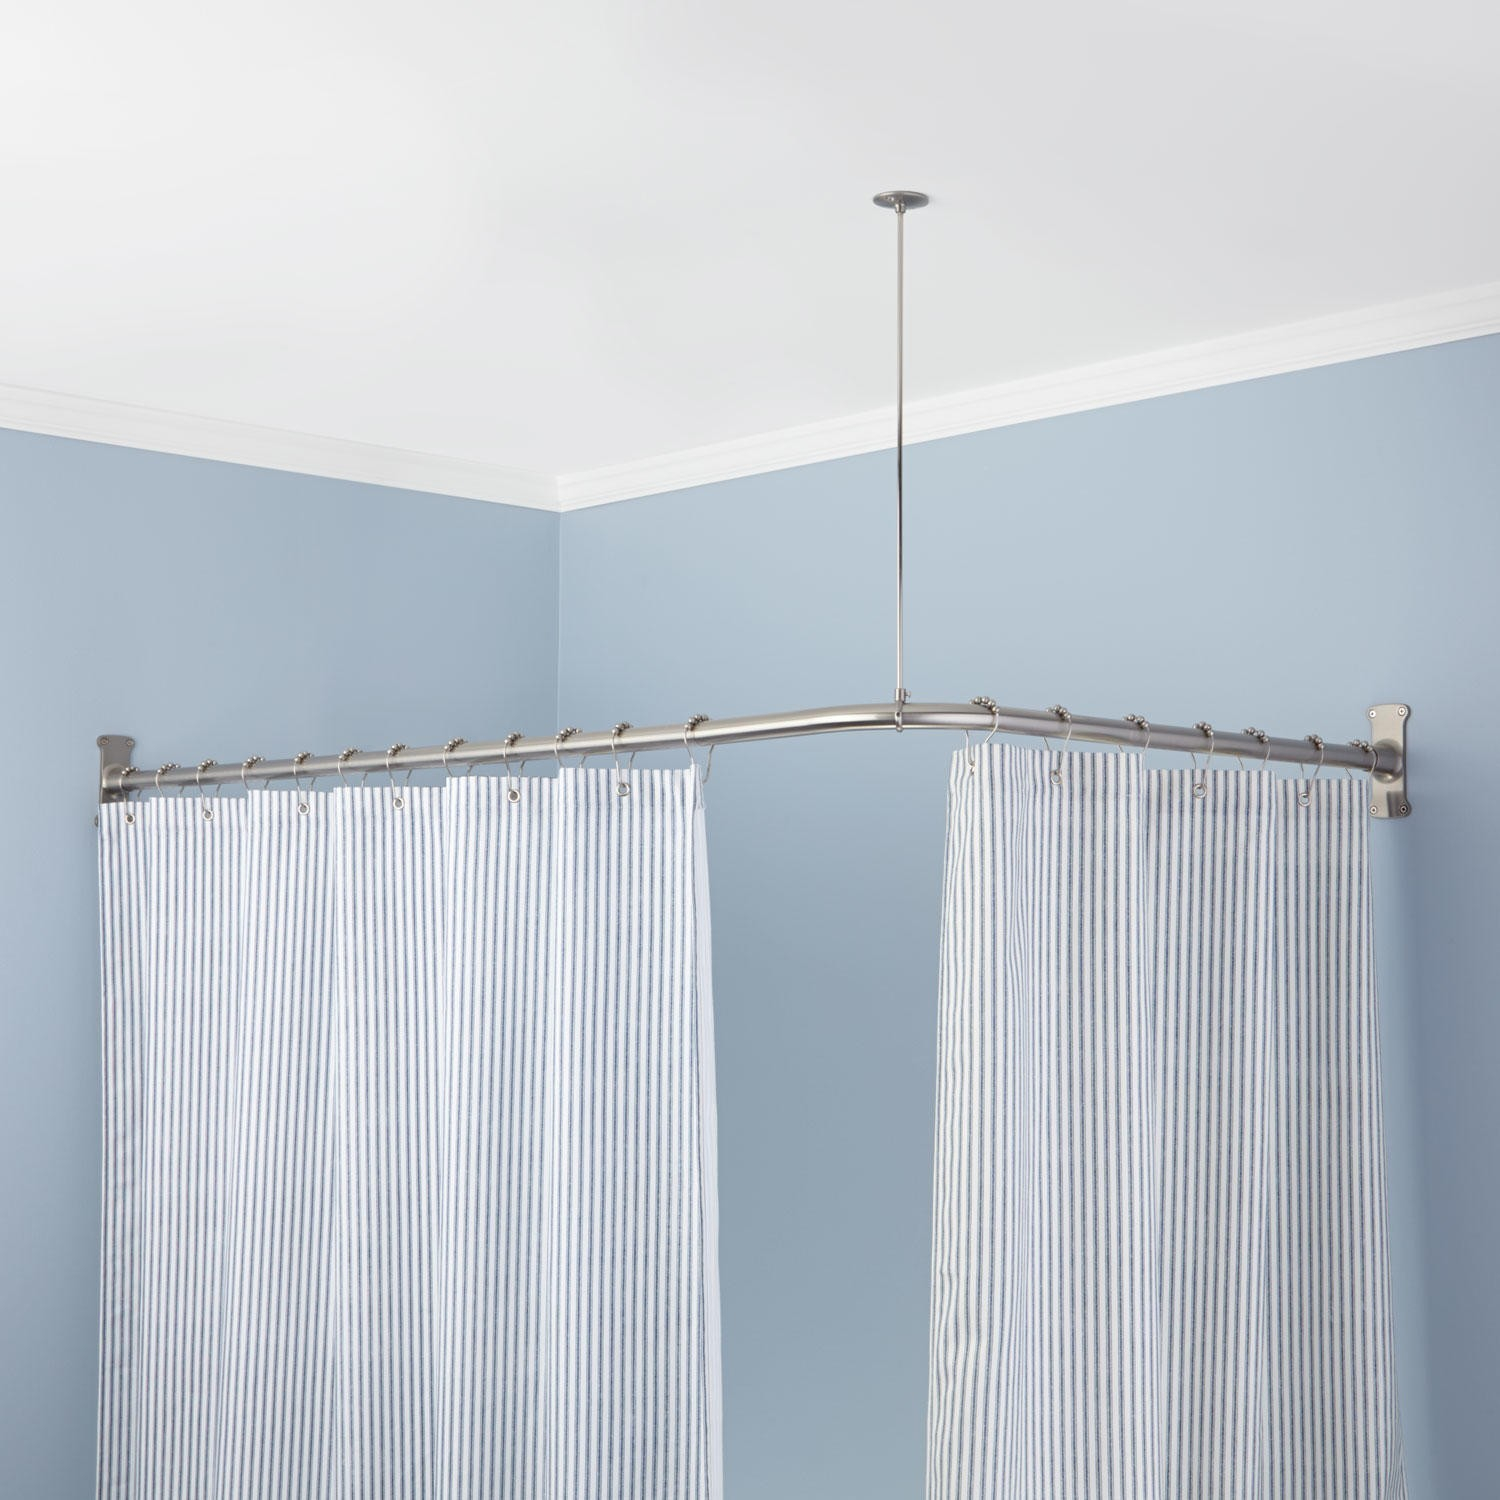 Oval Shower Curtain Rod Nickel The Homy Design Nice Oval with regard to sizing 1500 X 1500